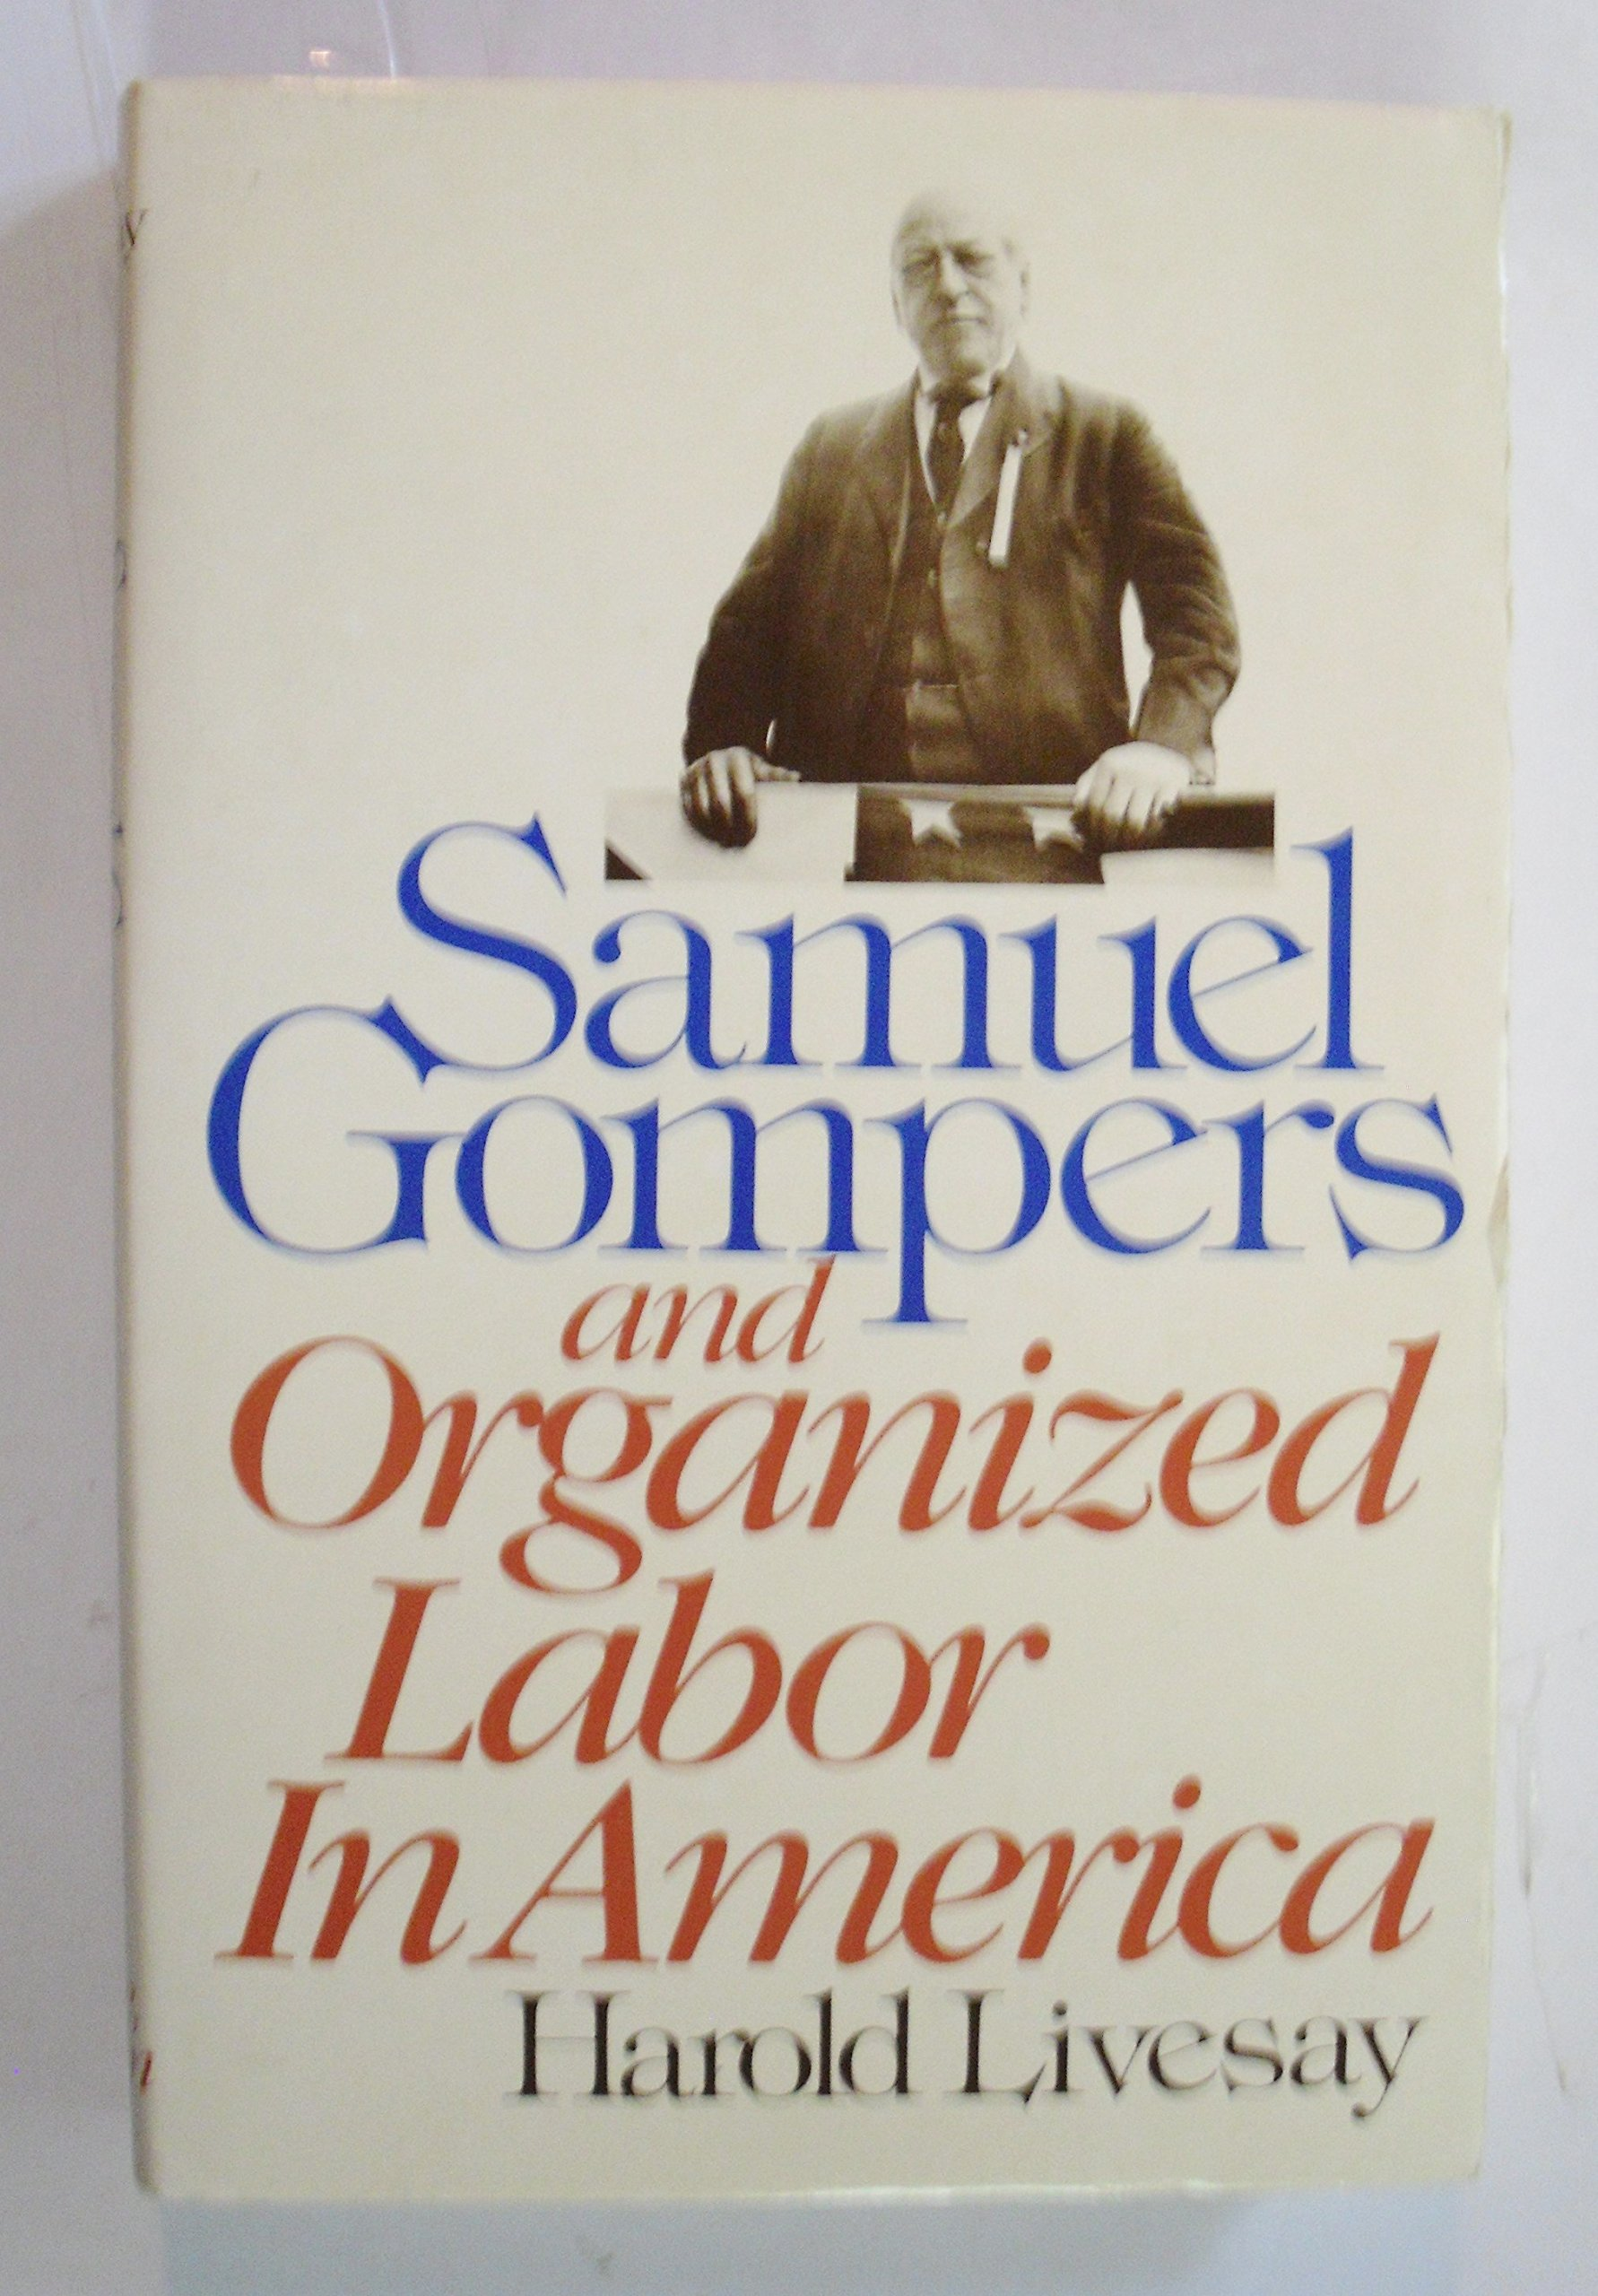 Samuel Gompers and Organized Labor In America (Library of American Biography), Harold C. Livesay